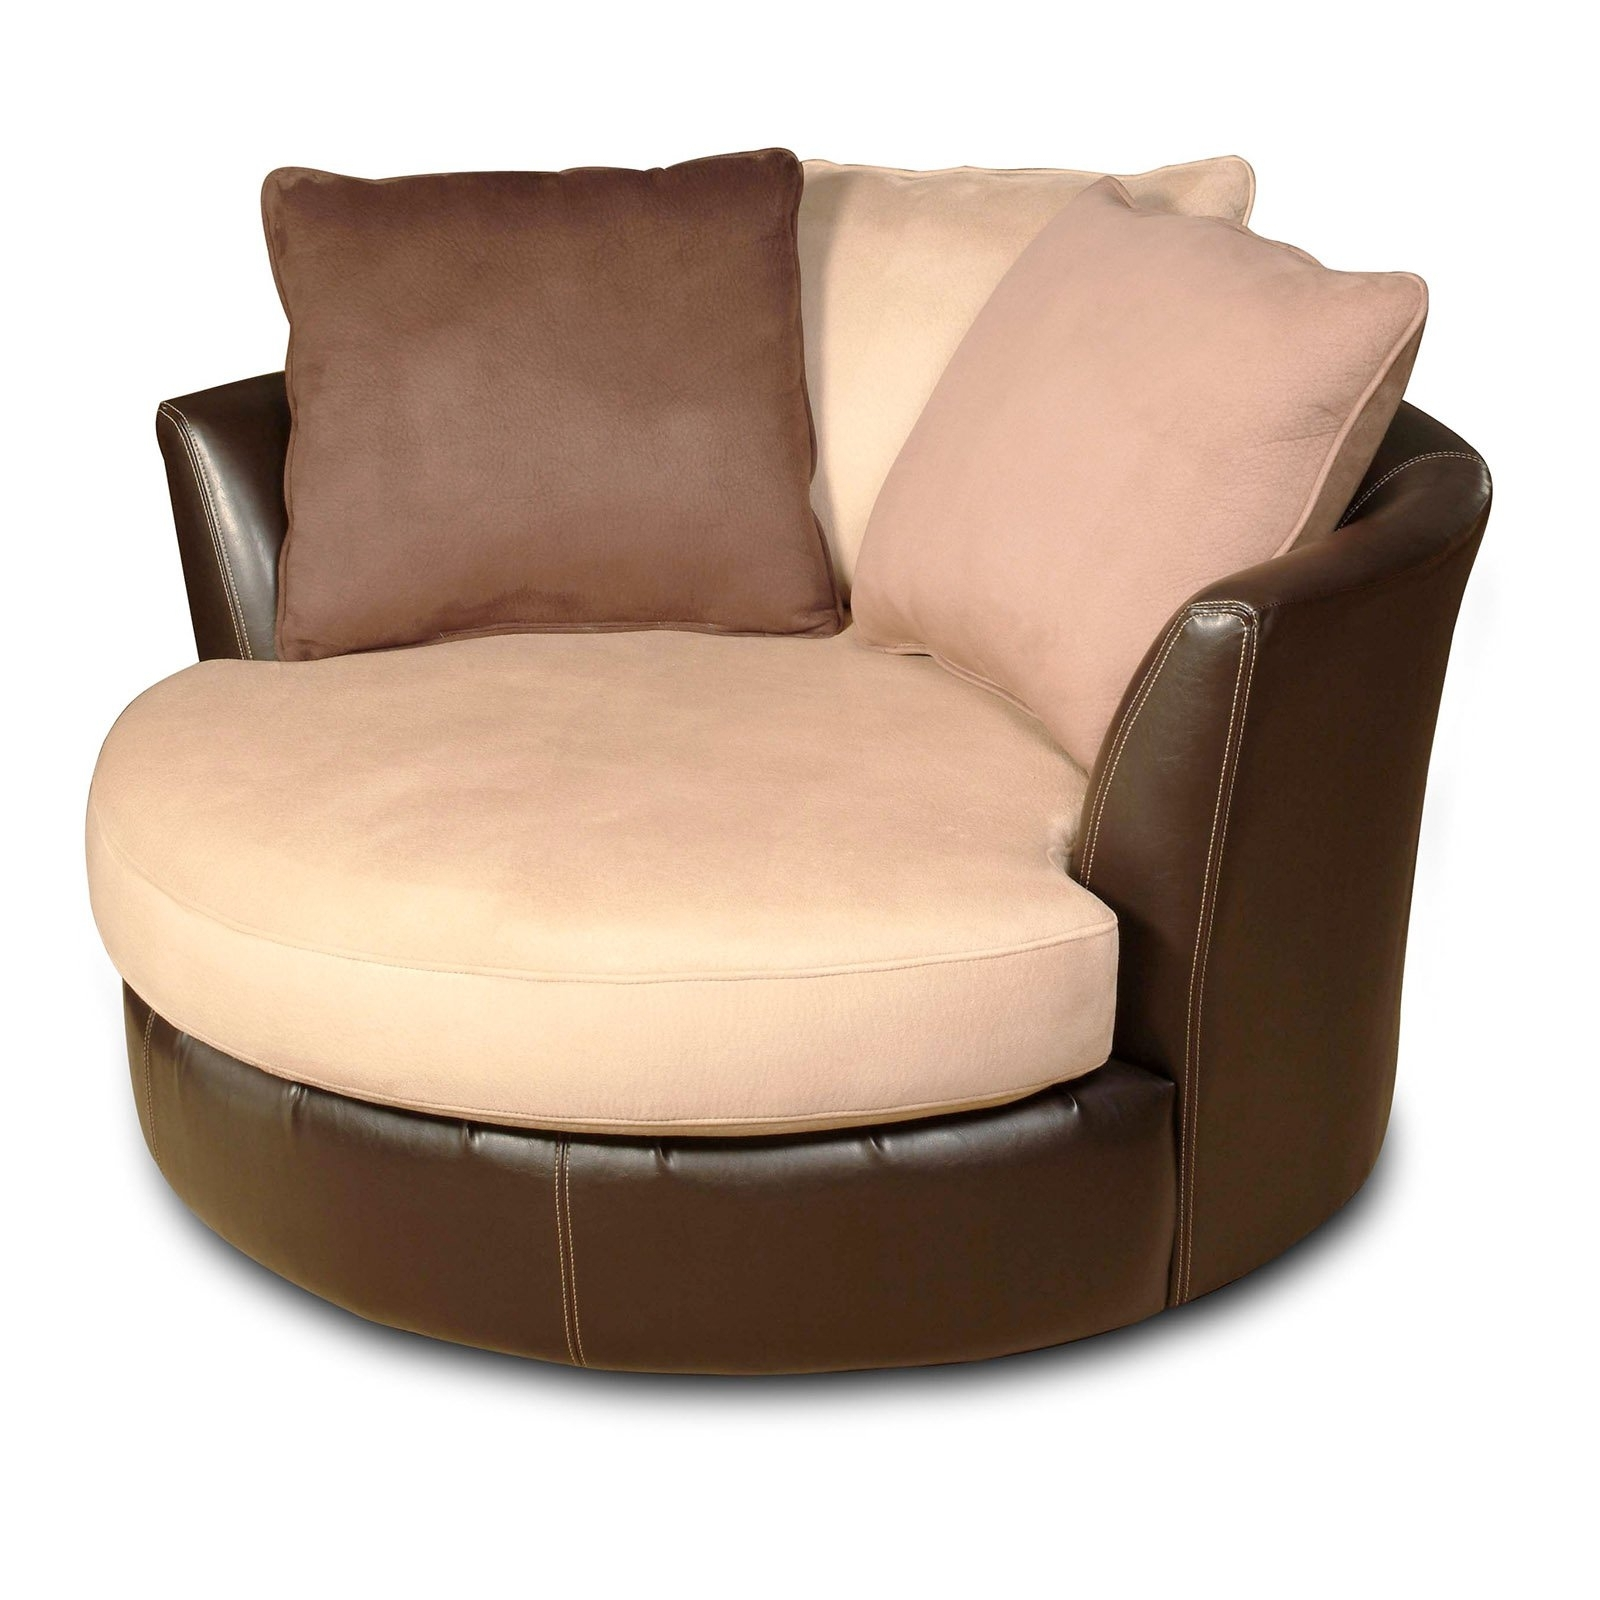 Hayneedle For Sofas With Swivel Chair (View 11 of 15)